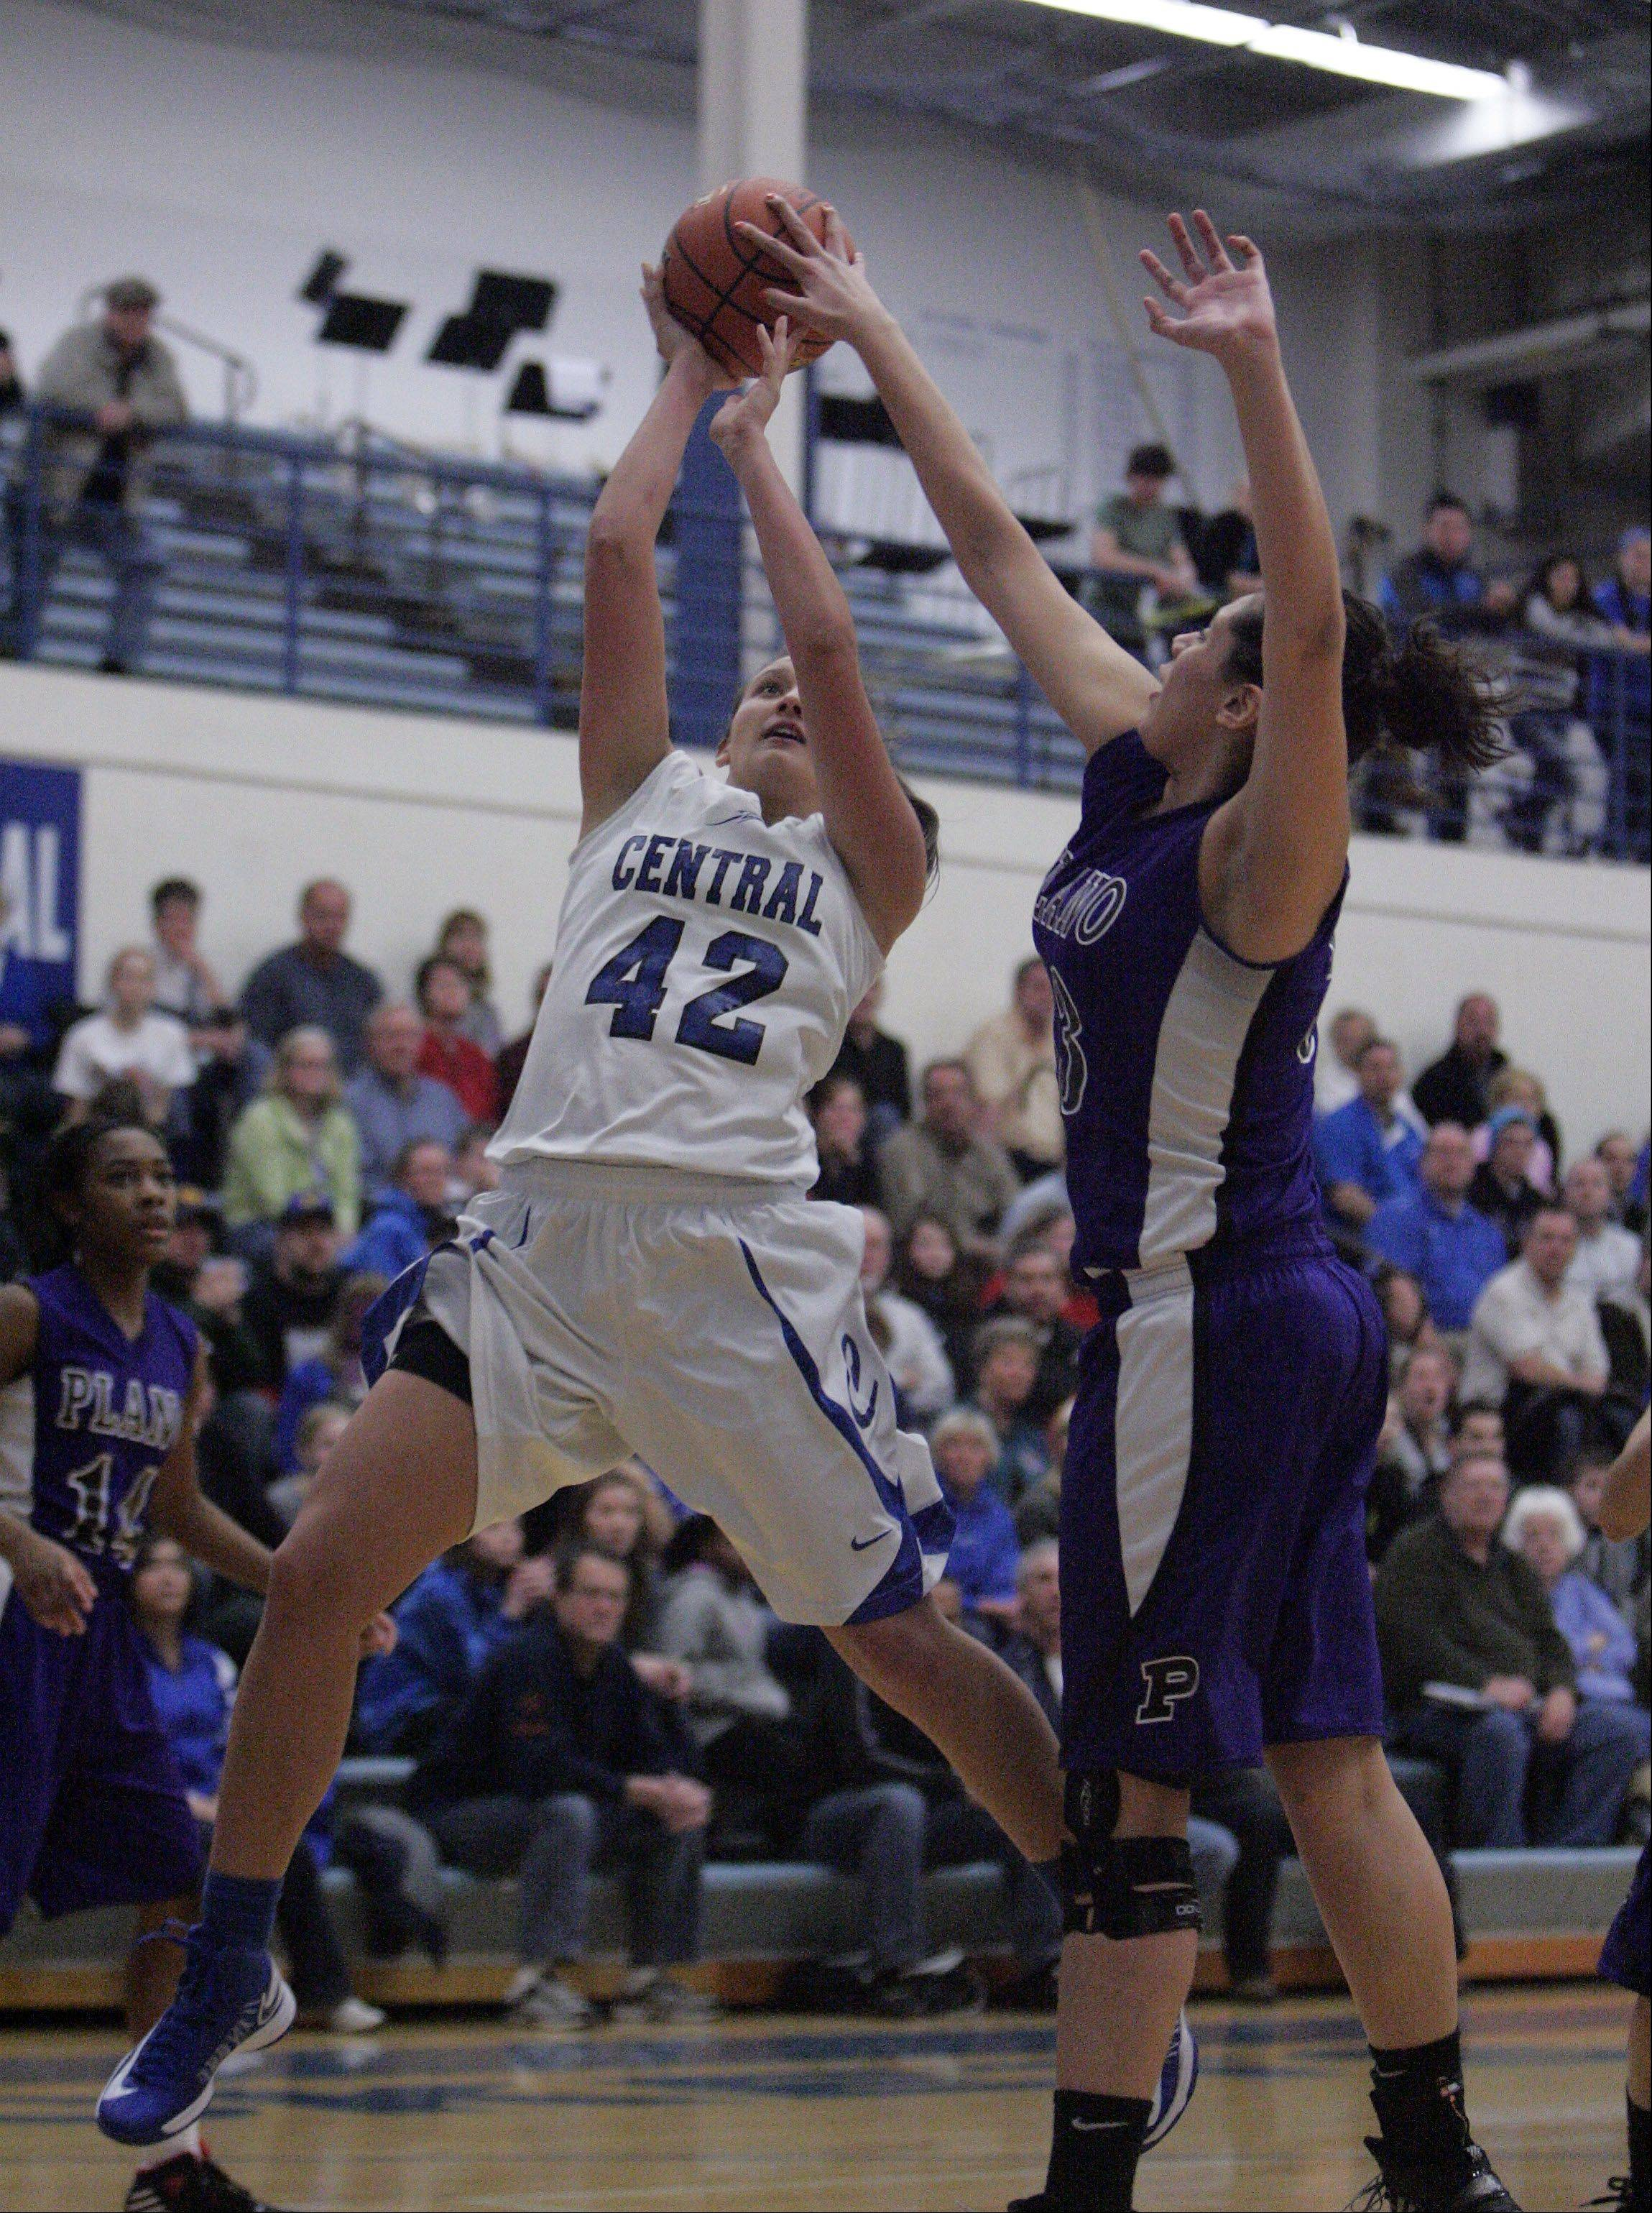 Images from the Burlington Central vs. Plano girls basketball game Friday, February 15, 2013.